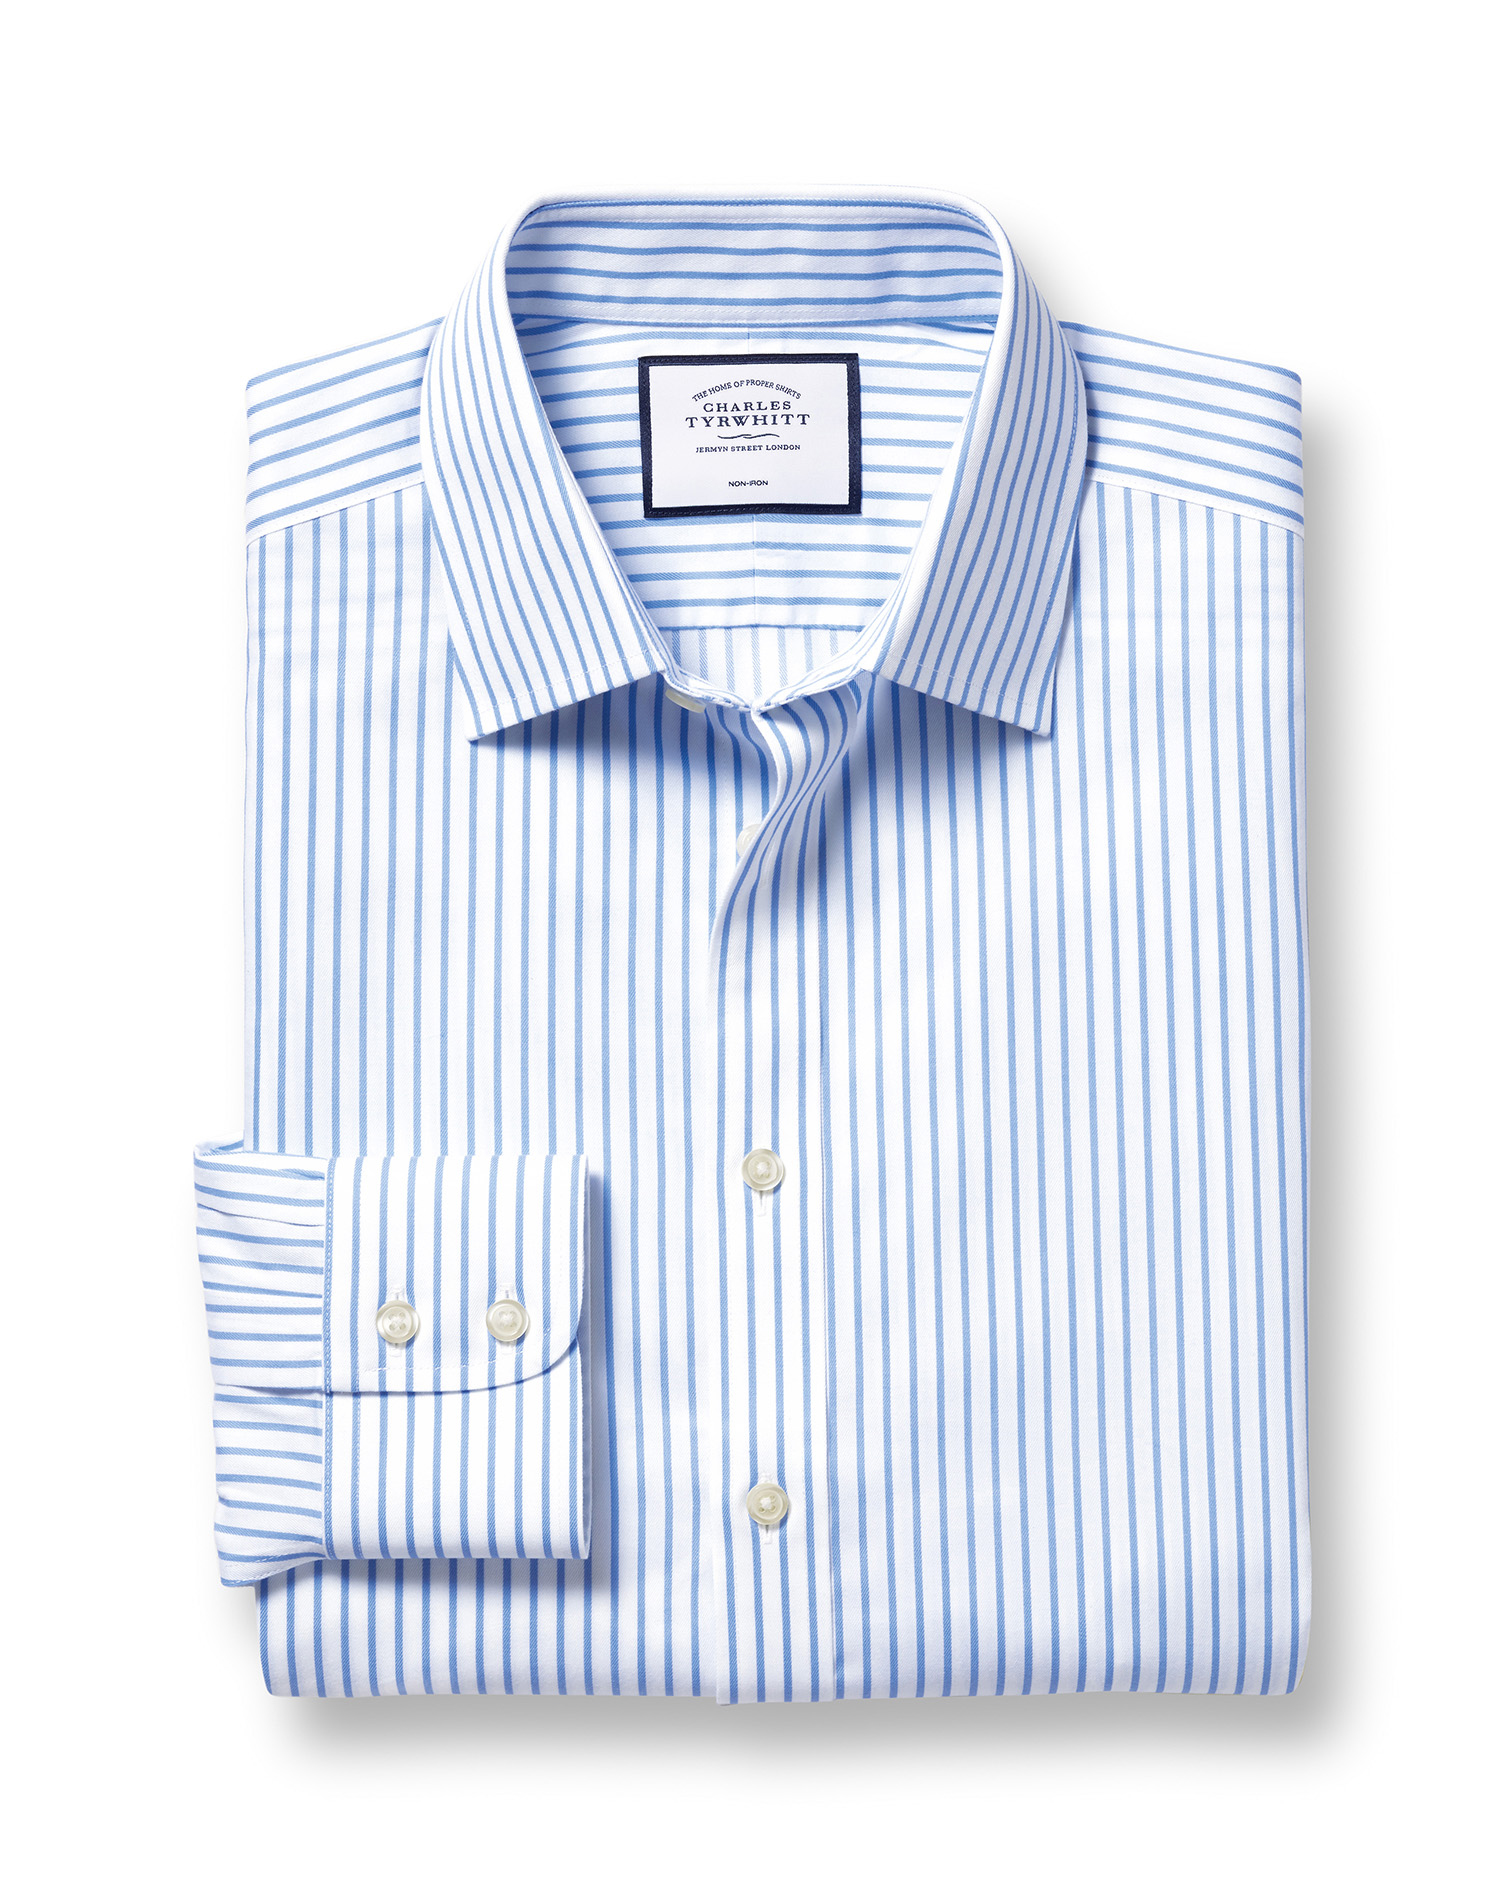 Slim Fit Non-Iron Sky Blue Stripe Twill Cotton Formal Shirt Single Cuff Size 17/37 by Charles Tyrwhi